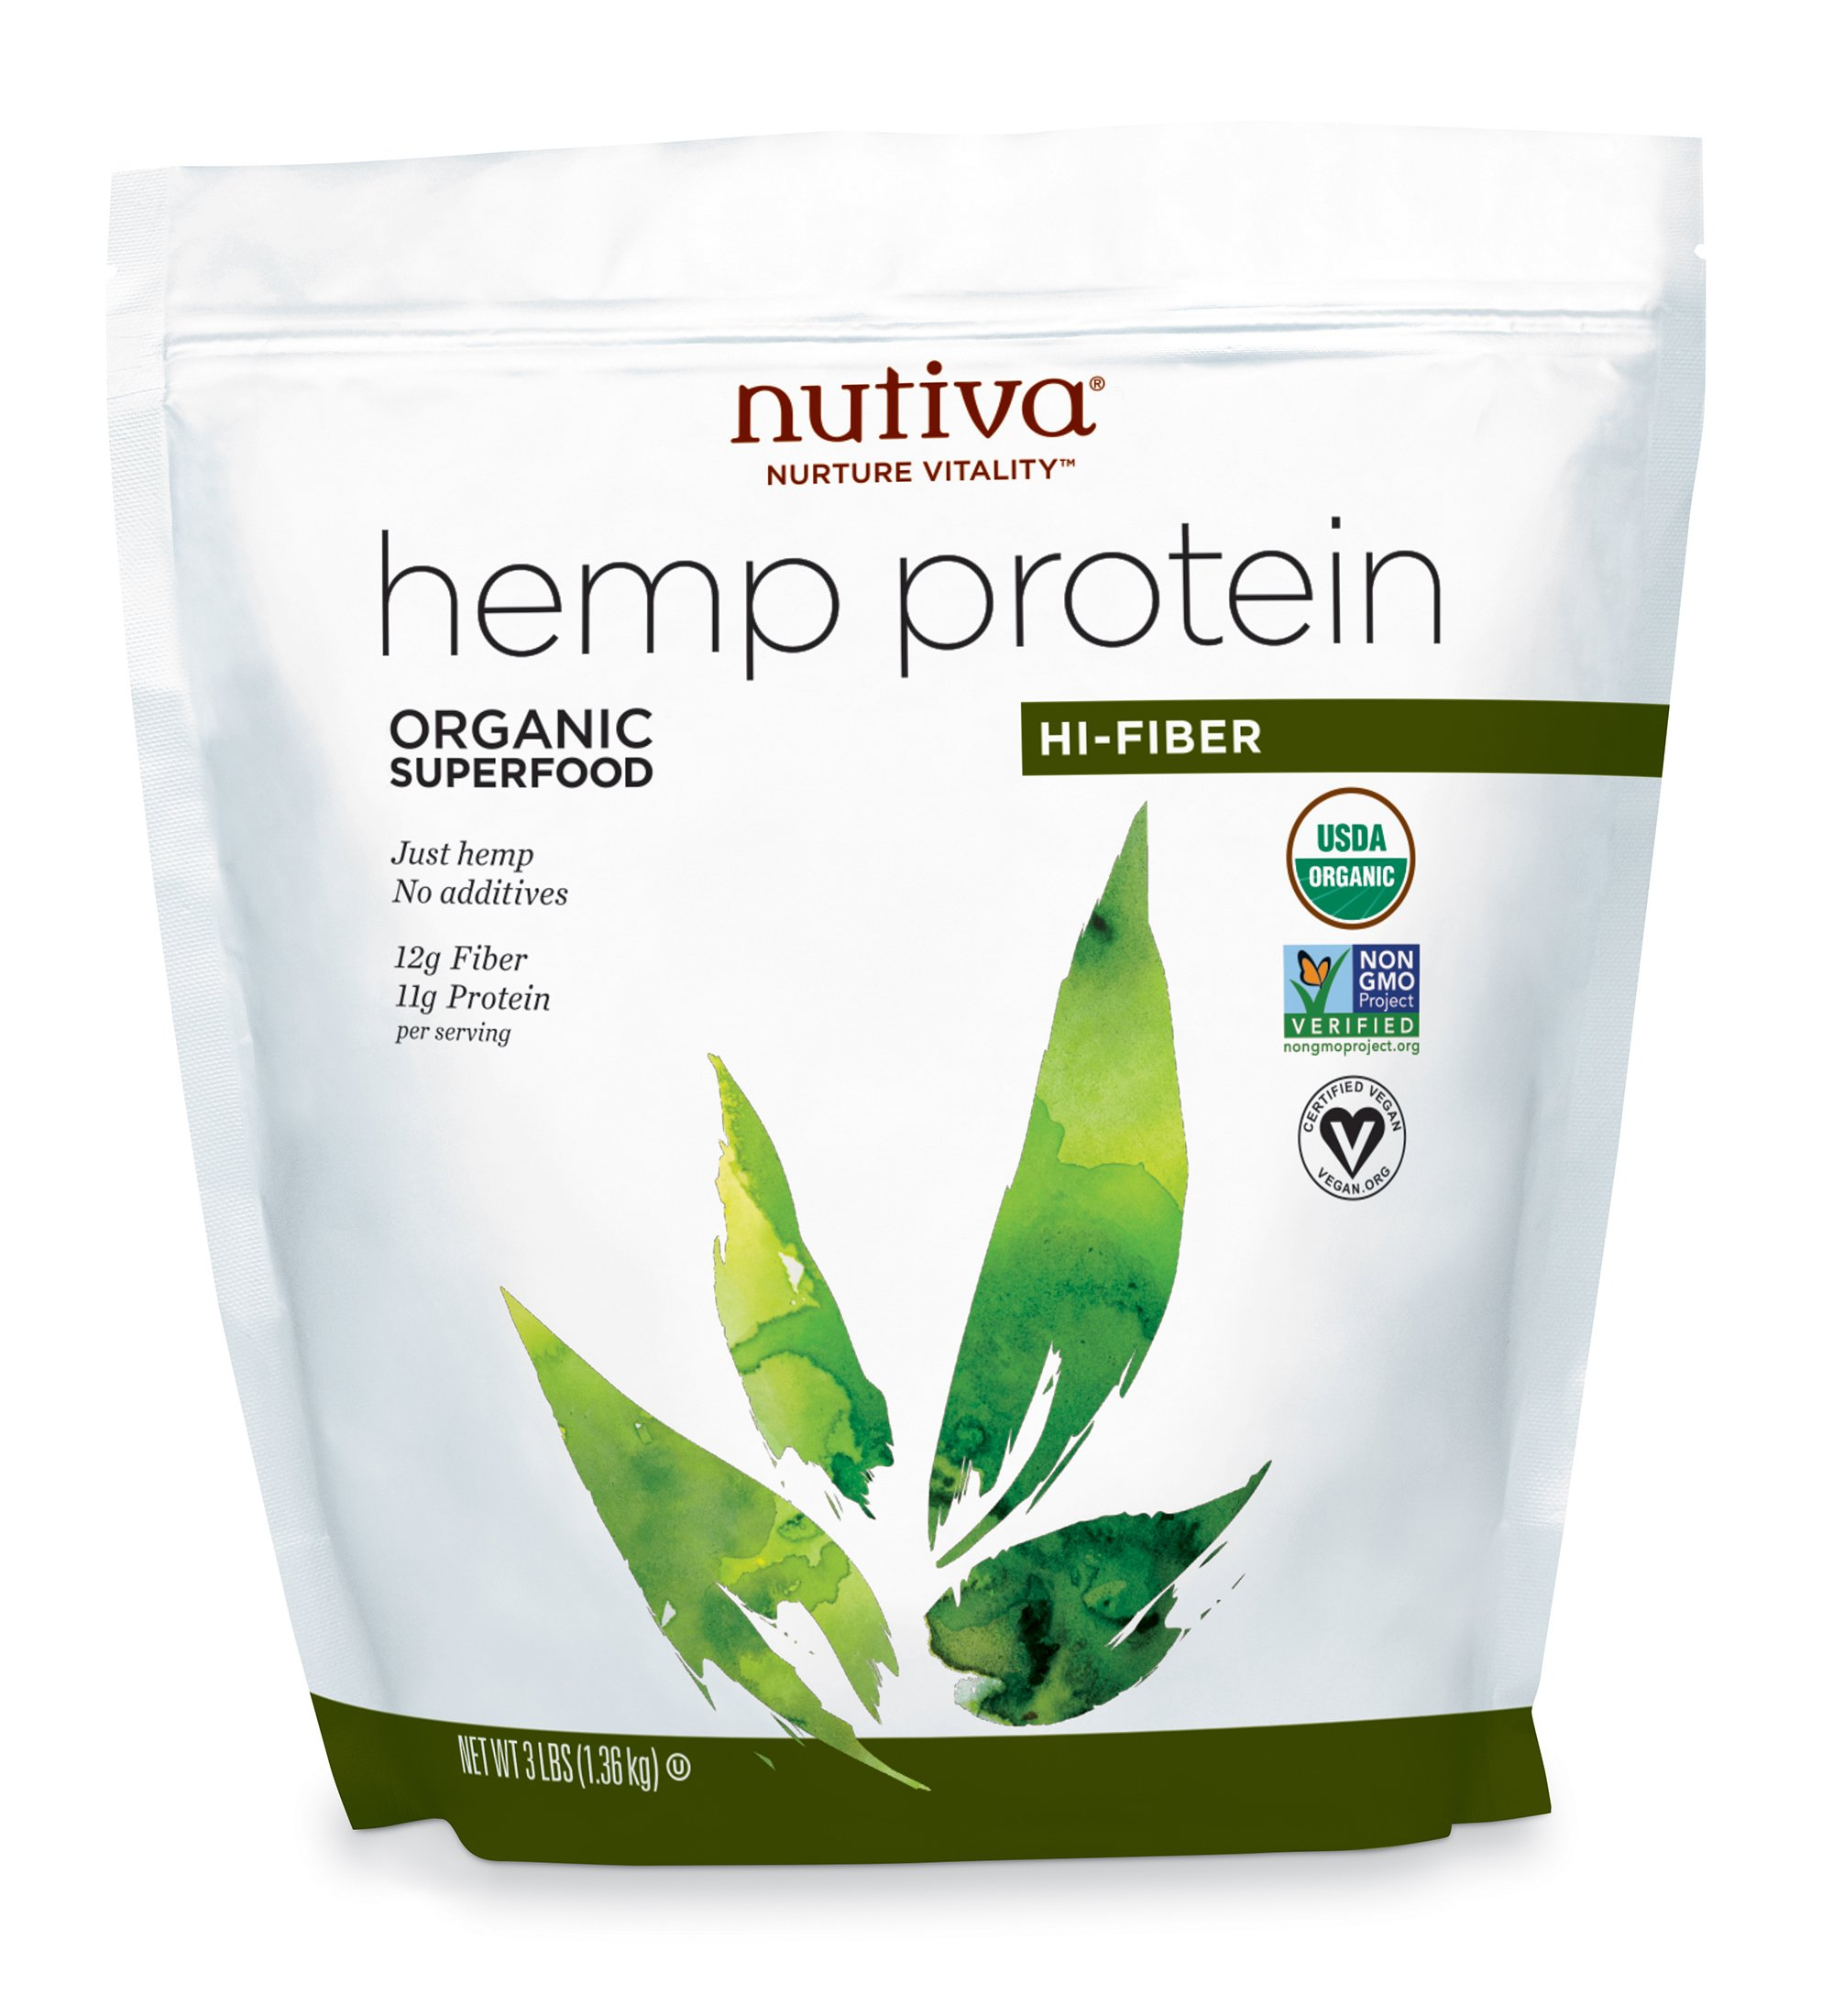 Nutiva Organic, Cold-Processed Hemp Protein from non-GMO, Sustainably Farmed Canadian Hempseed, Hi-Fiber, 3-Pound Bag